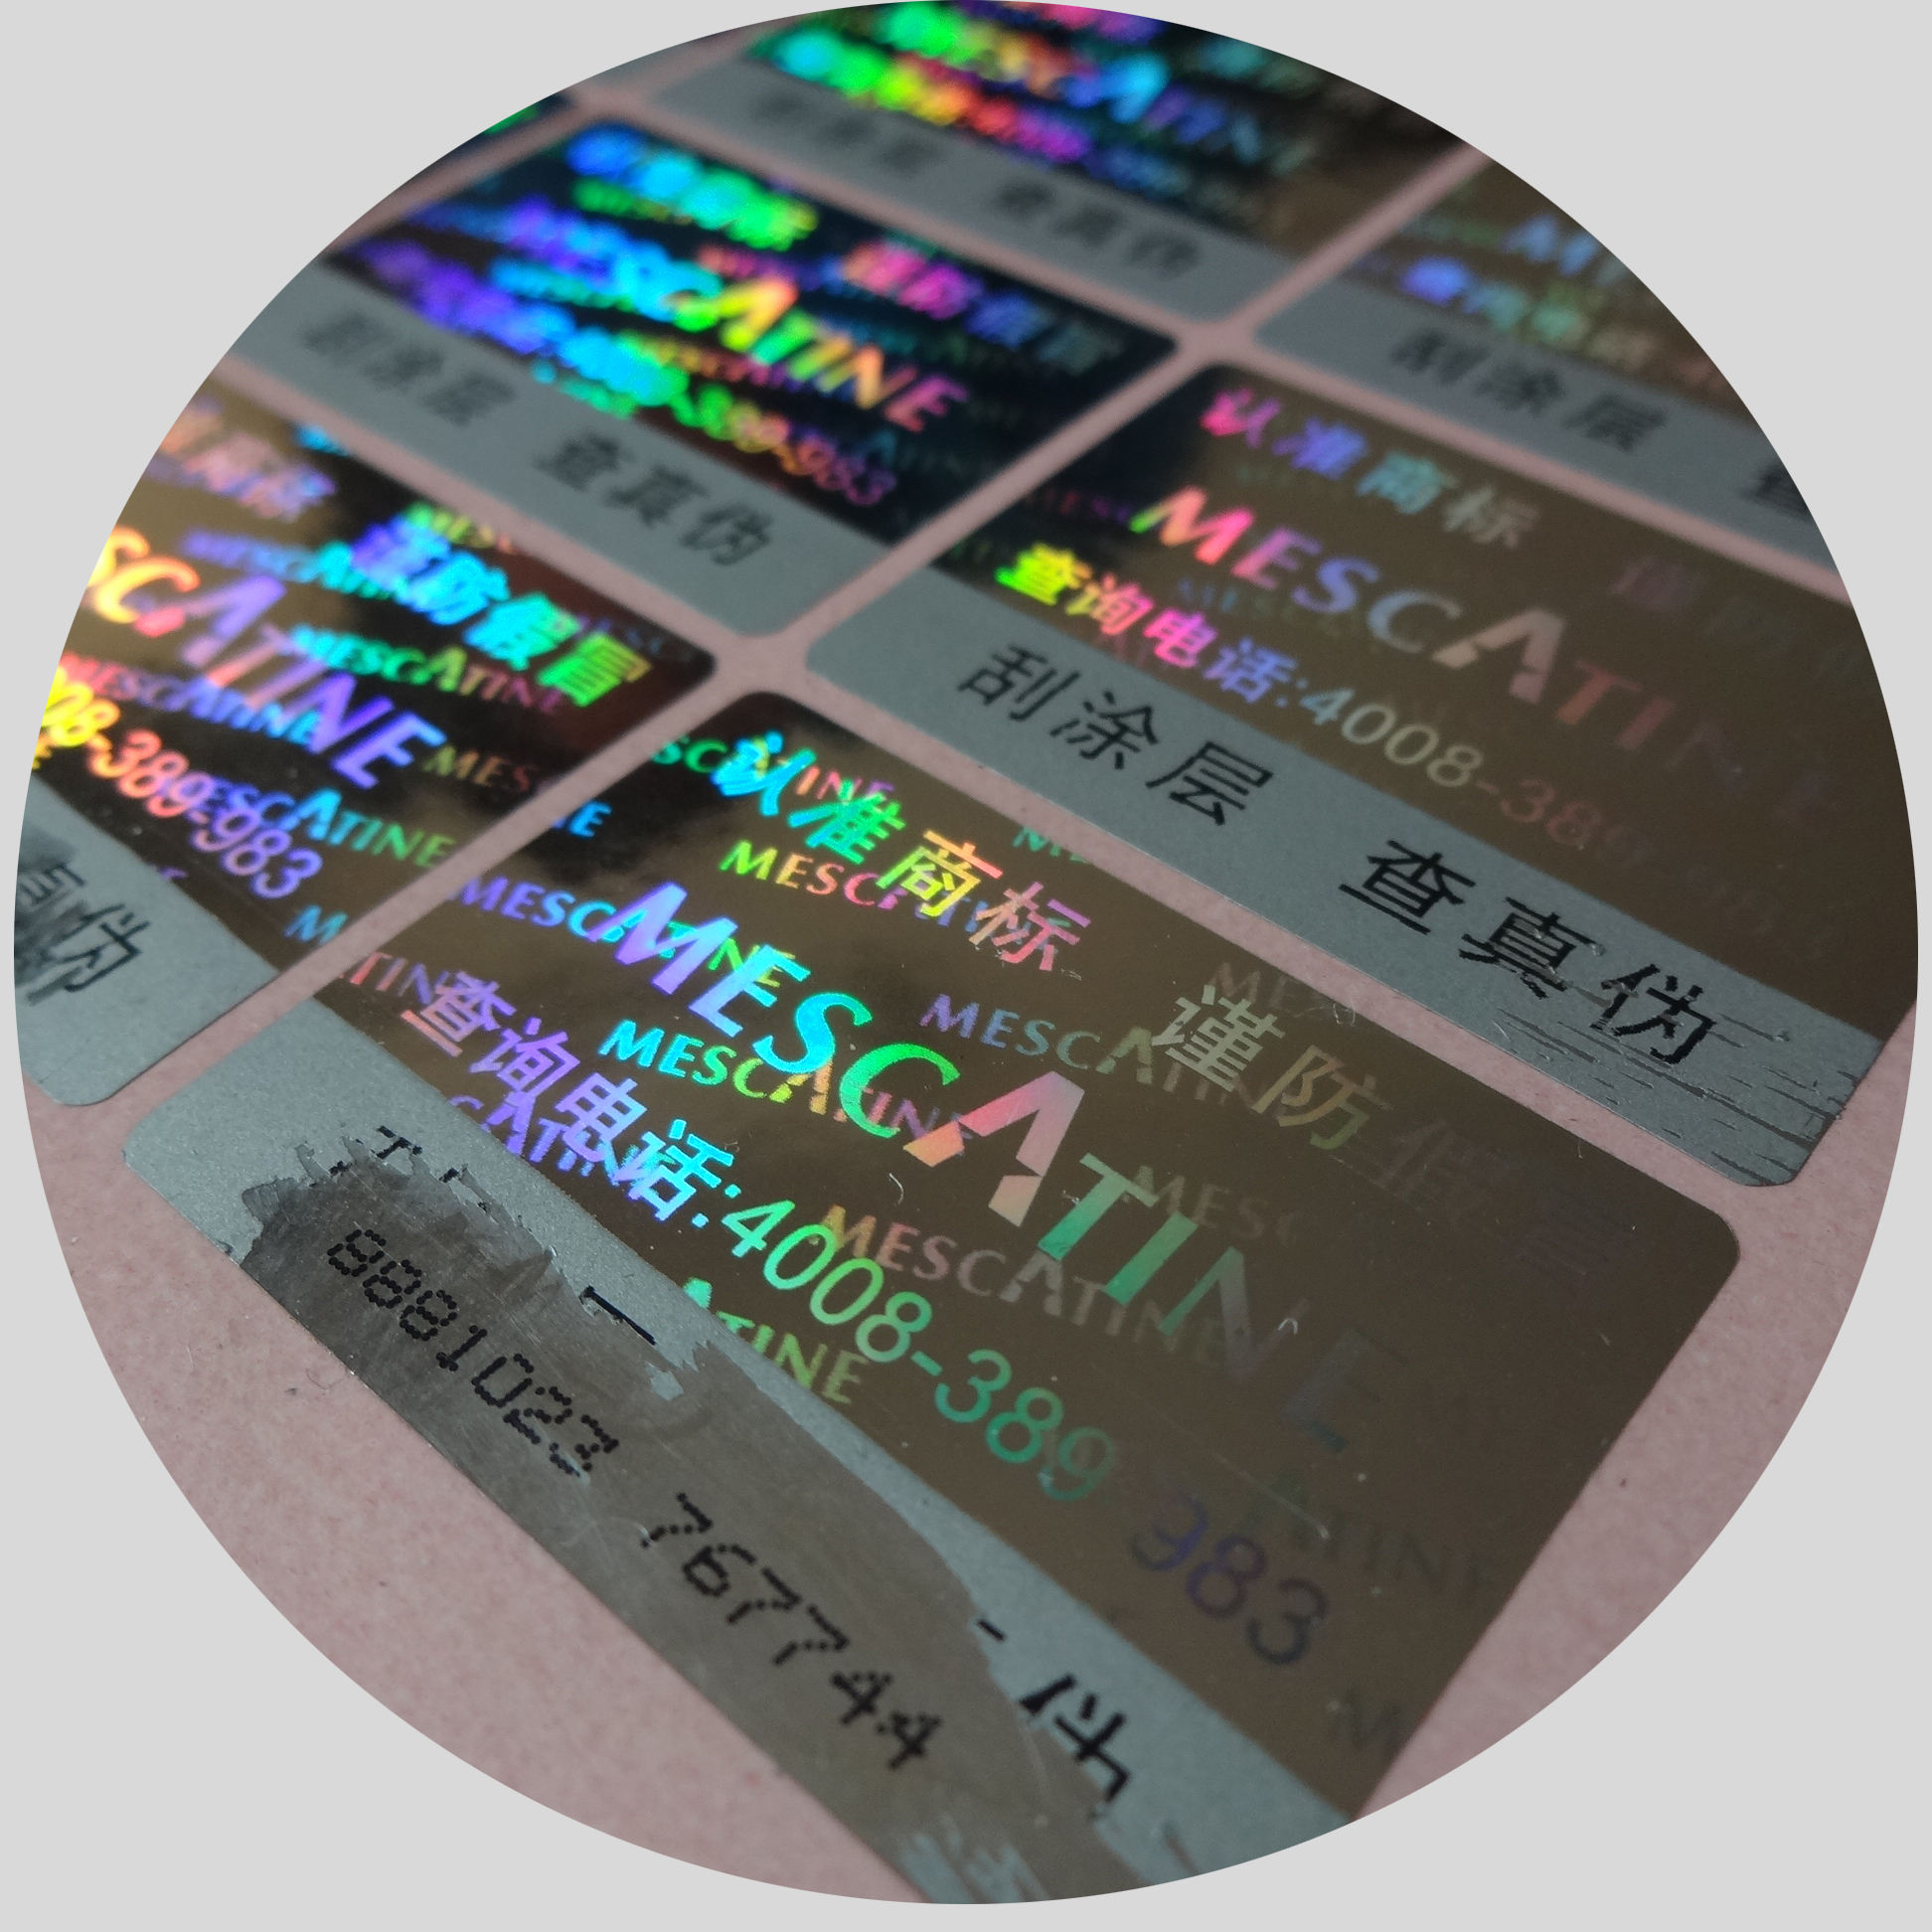 custom logo security Authentic Anti-fake silver hologram label with unique codes numbers covered by scratch off coating